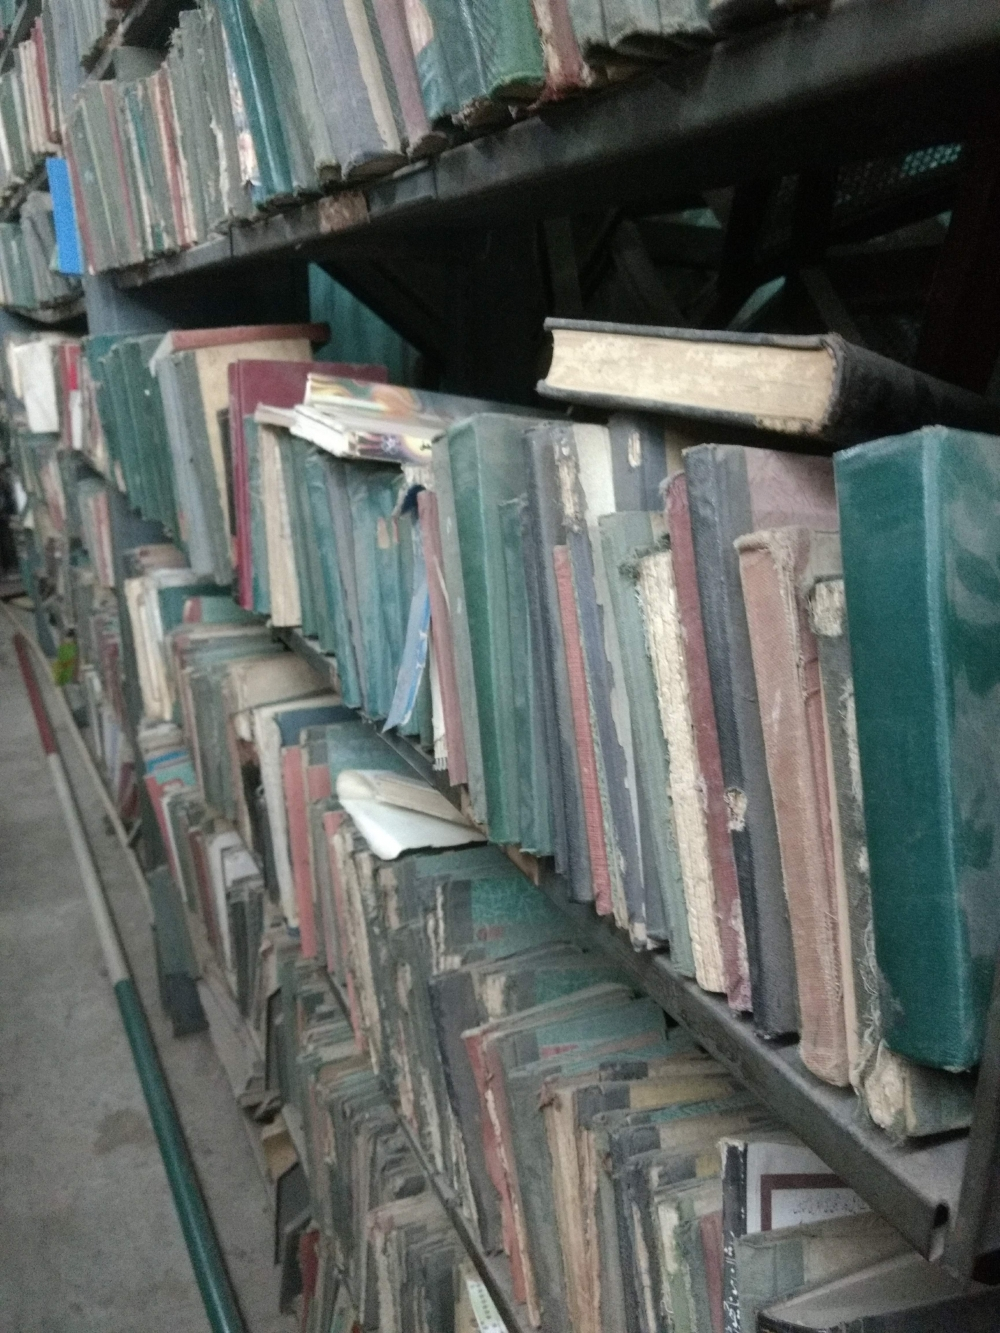 Fig. 3. Old Urdu books—novels, anthologies of poetry and the occasional translation of Thoreau's Walden—stacked in the Shalibanda library.